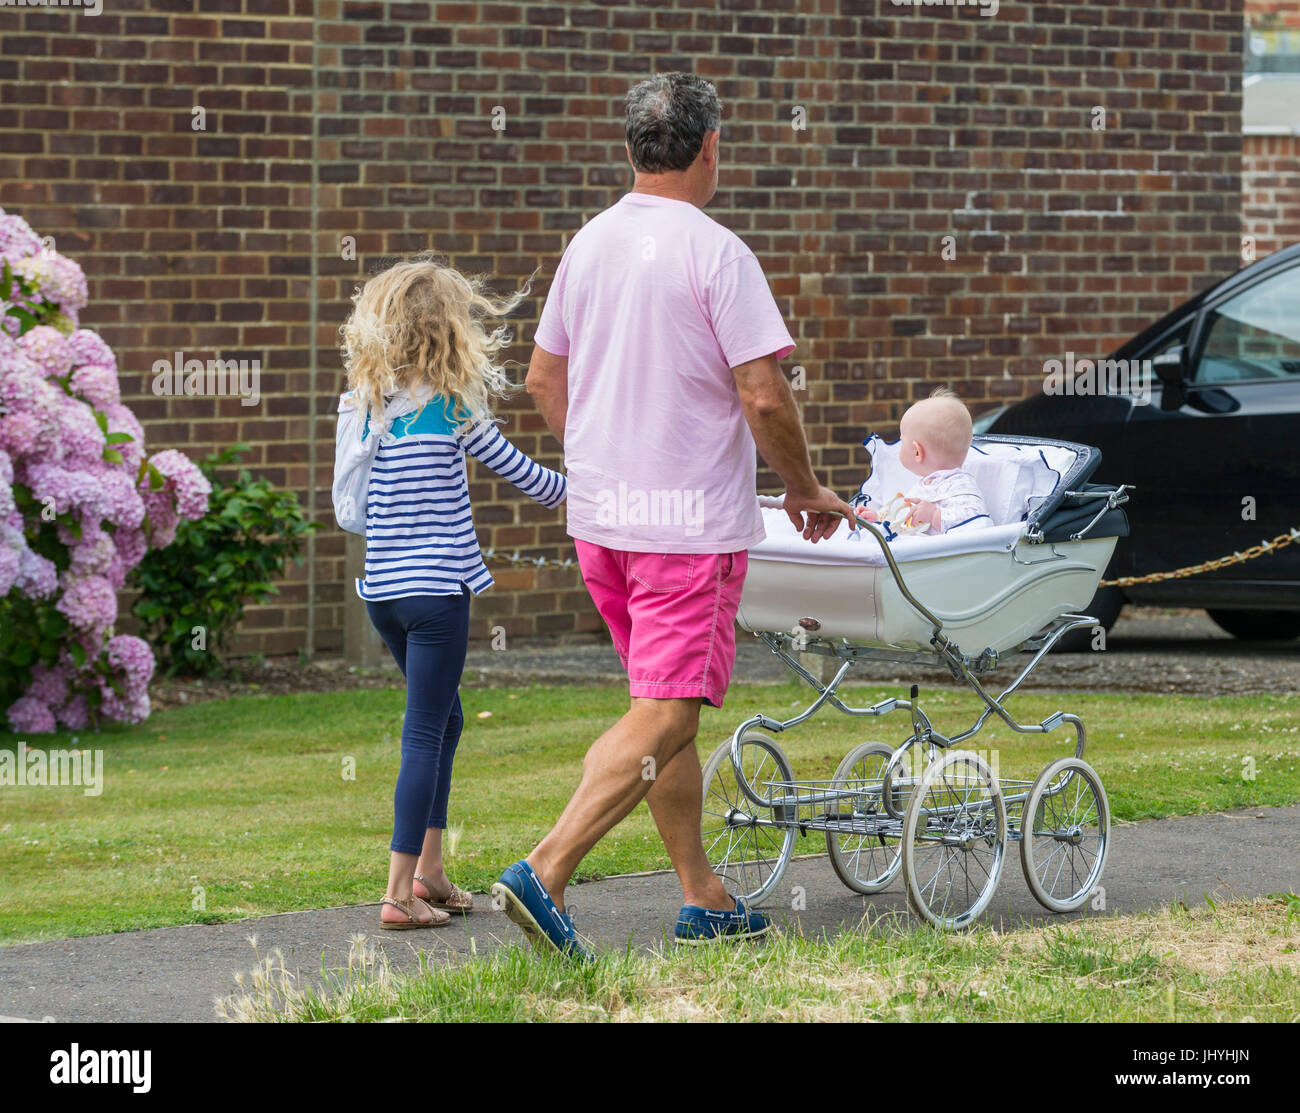 Man walking with a child and pushing a pram with a baby. Single parent family. - Stock Image